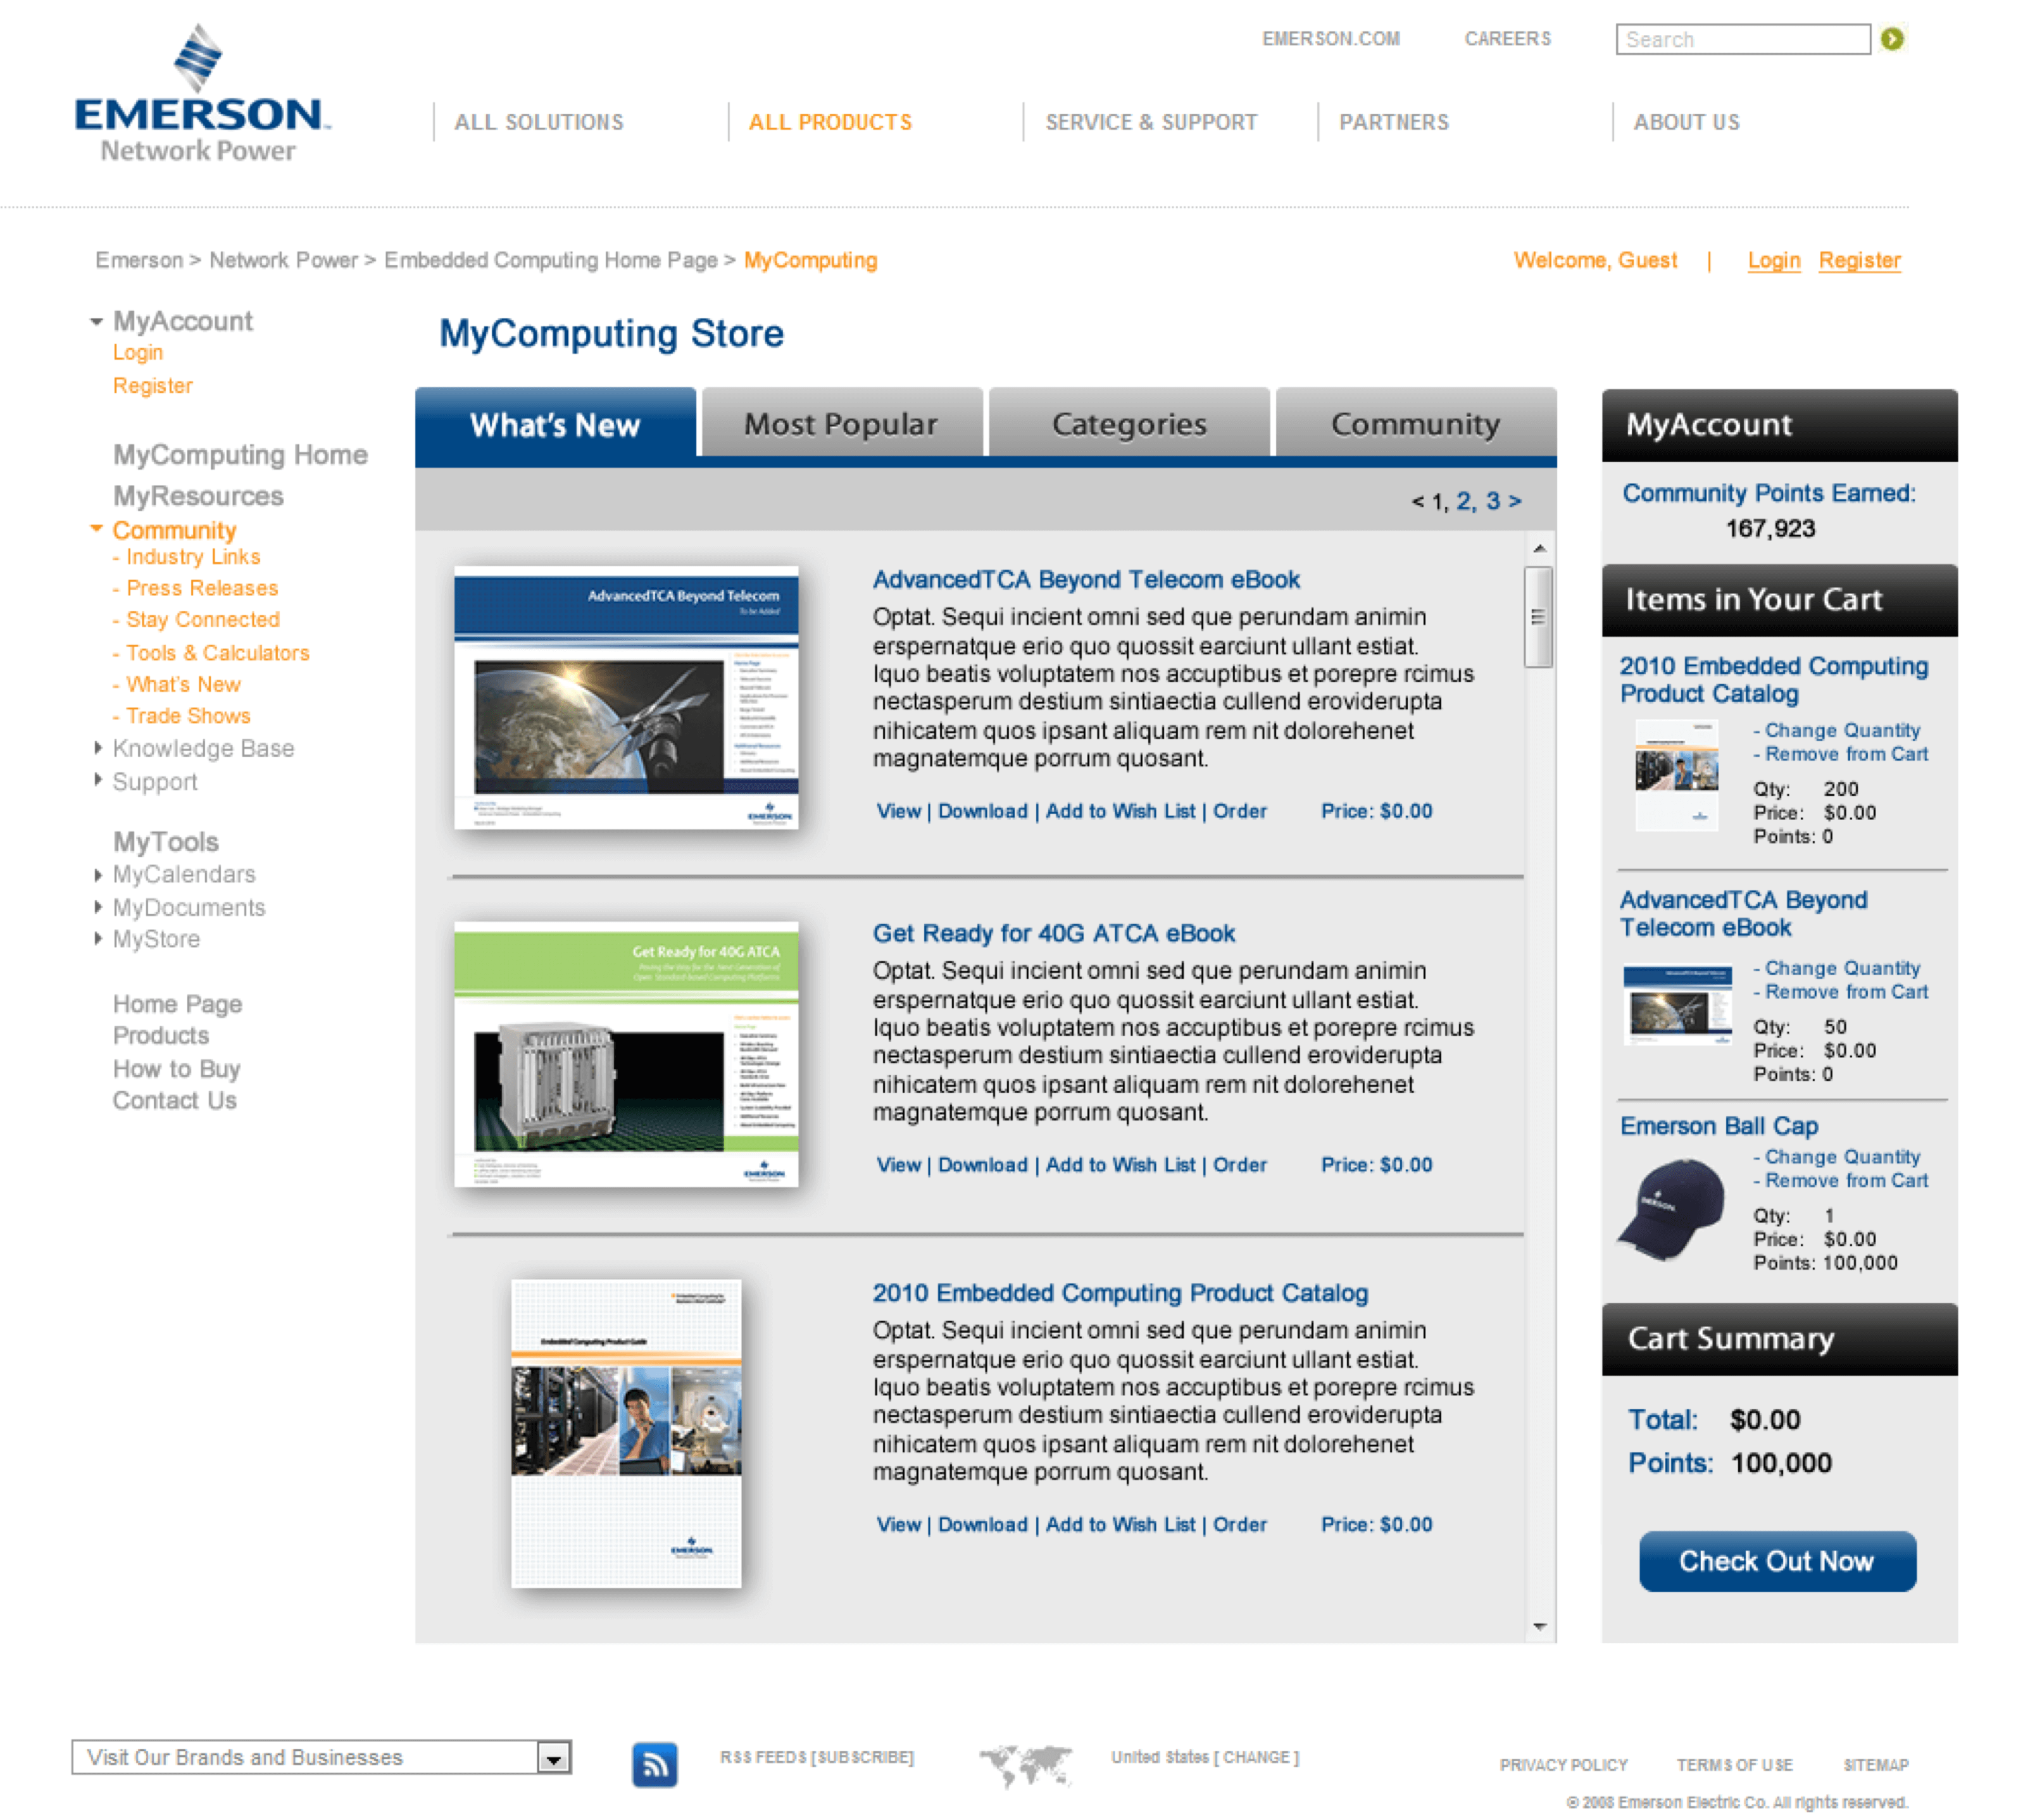 Emerson-Embedded-Computing-Extranet-Portal-Brochures-Ebooks-Whitepapers